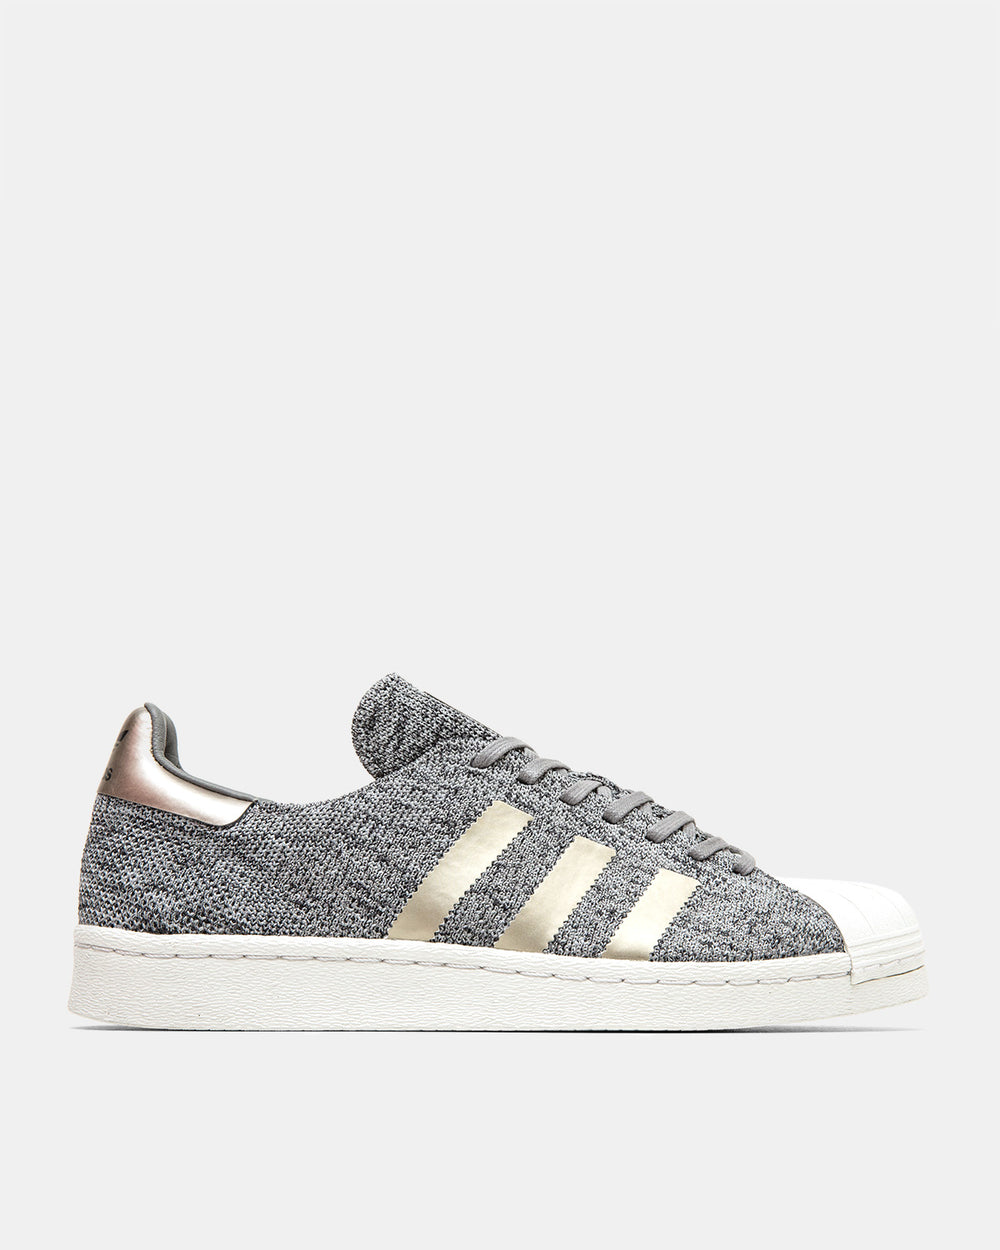 adidas - Primeknit Superstar Boost (Light Solid Grey | Multi Solid Grey | Charcoal Solid Grey)